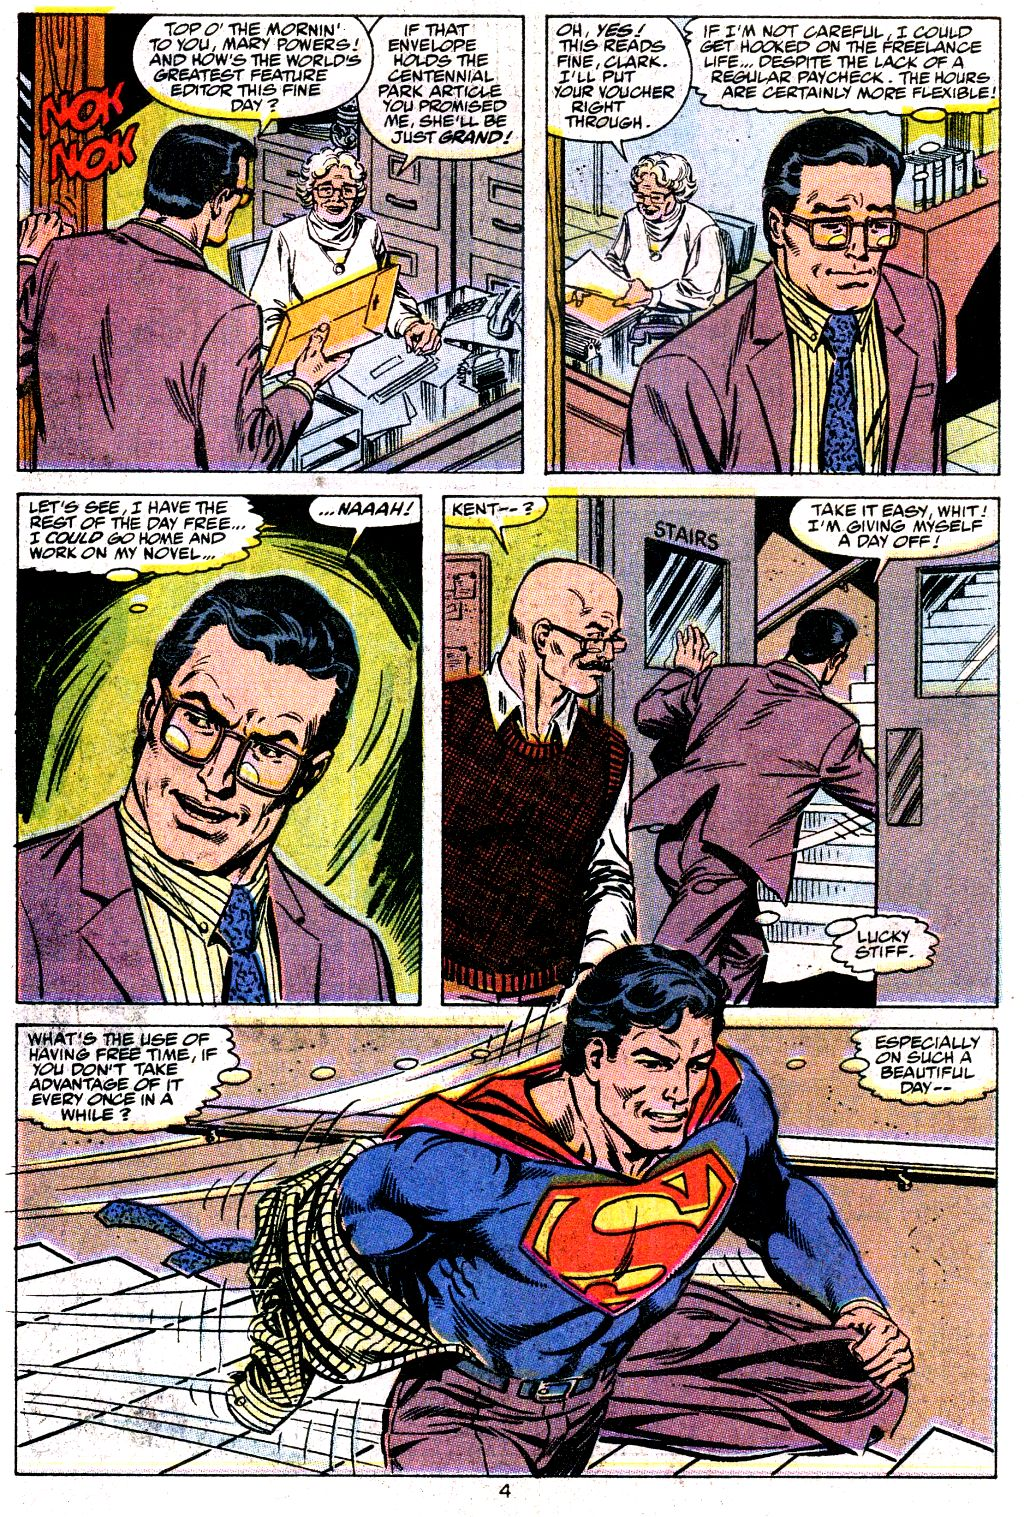 Action Comics (1938) 653 Page 4